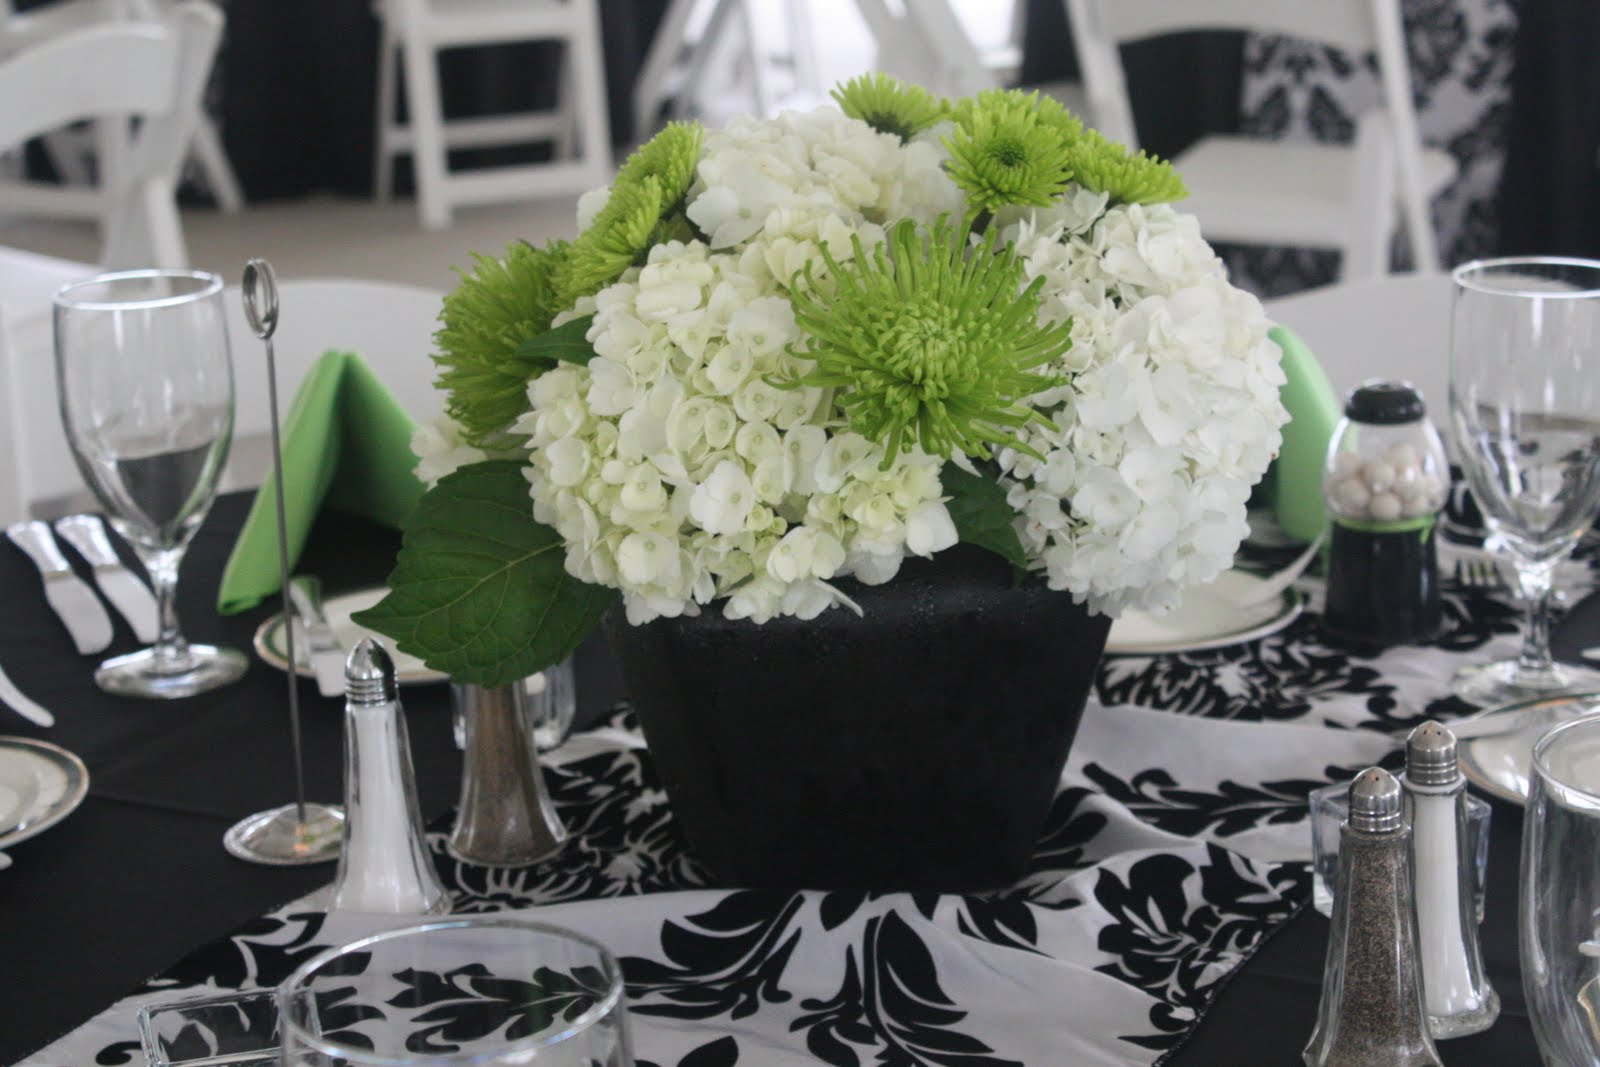 Centerpieces in black tulip